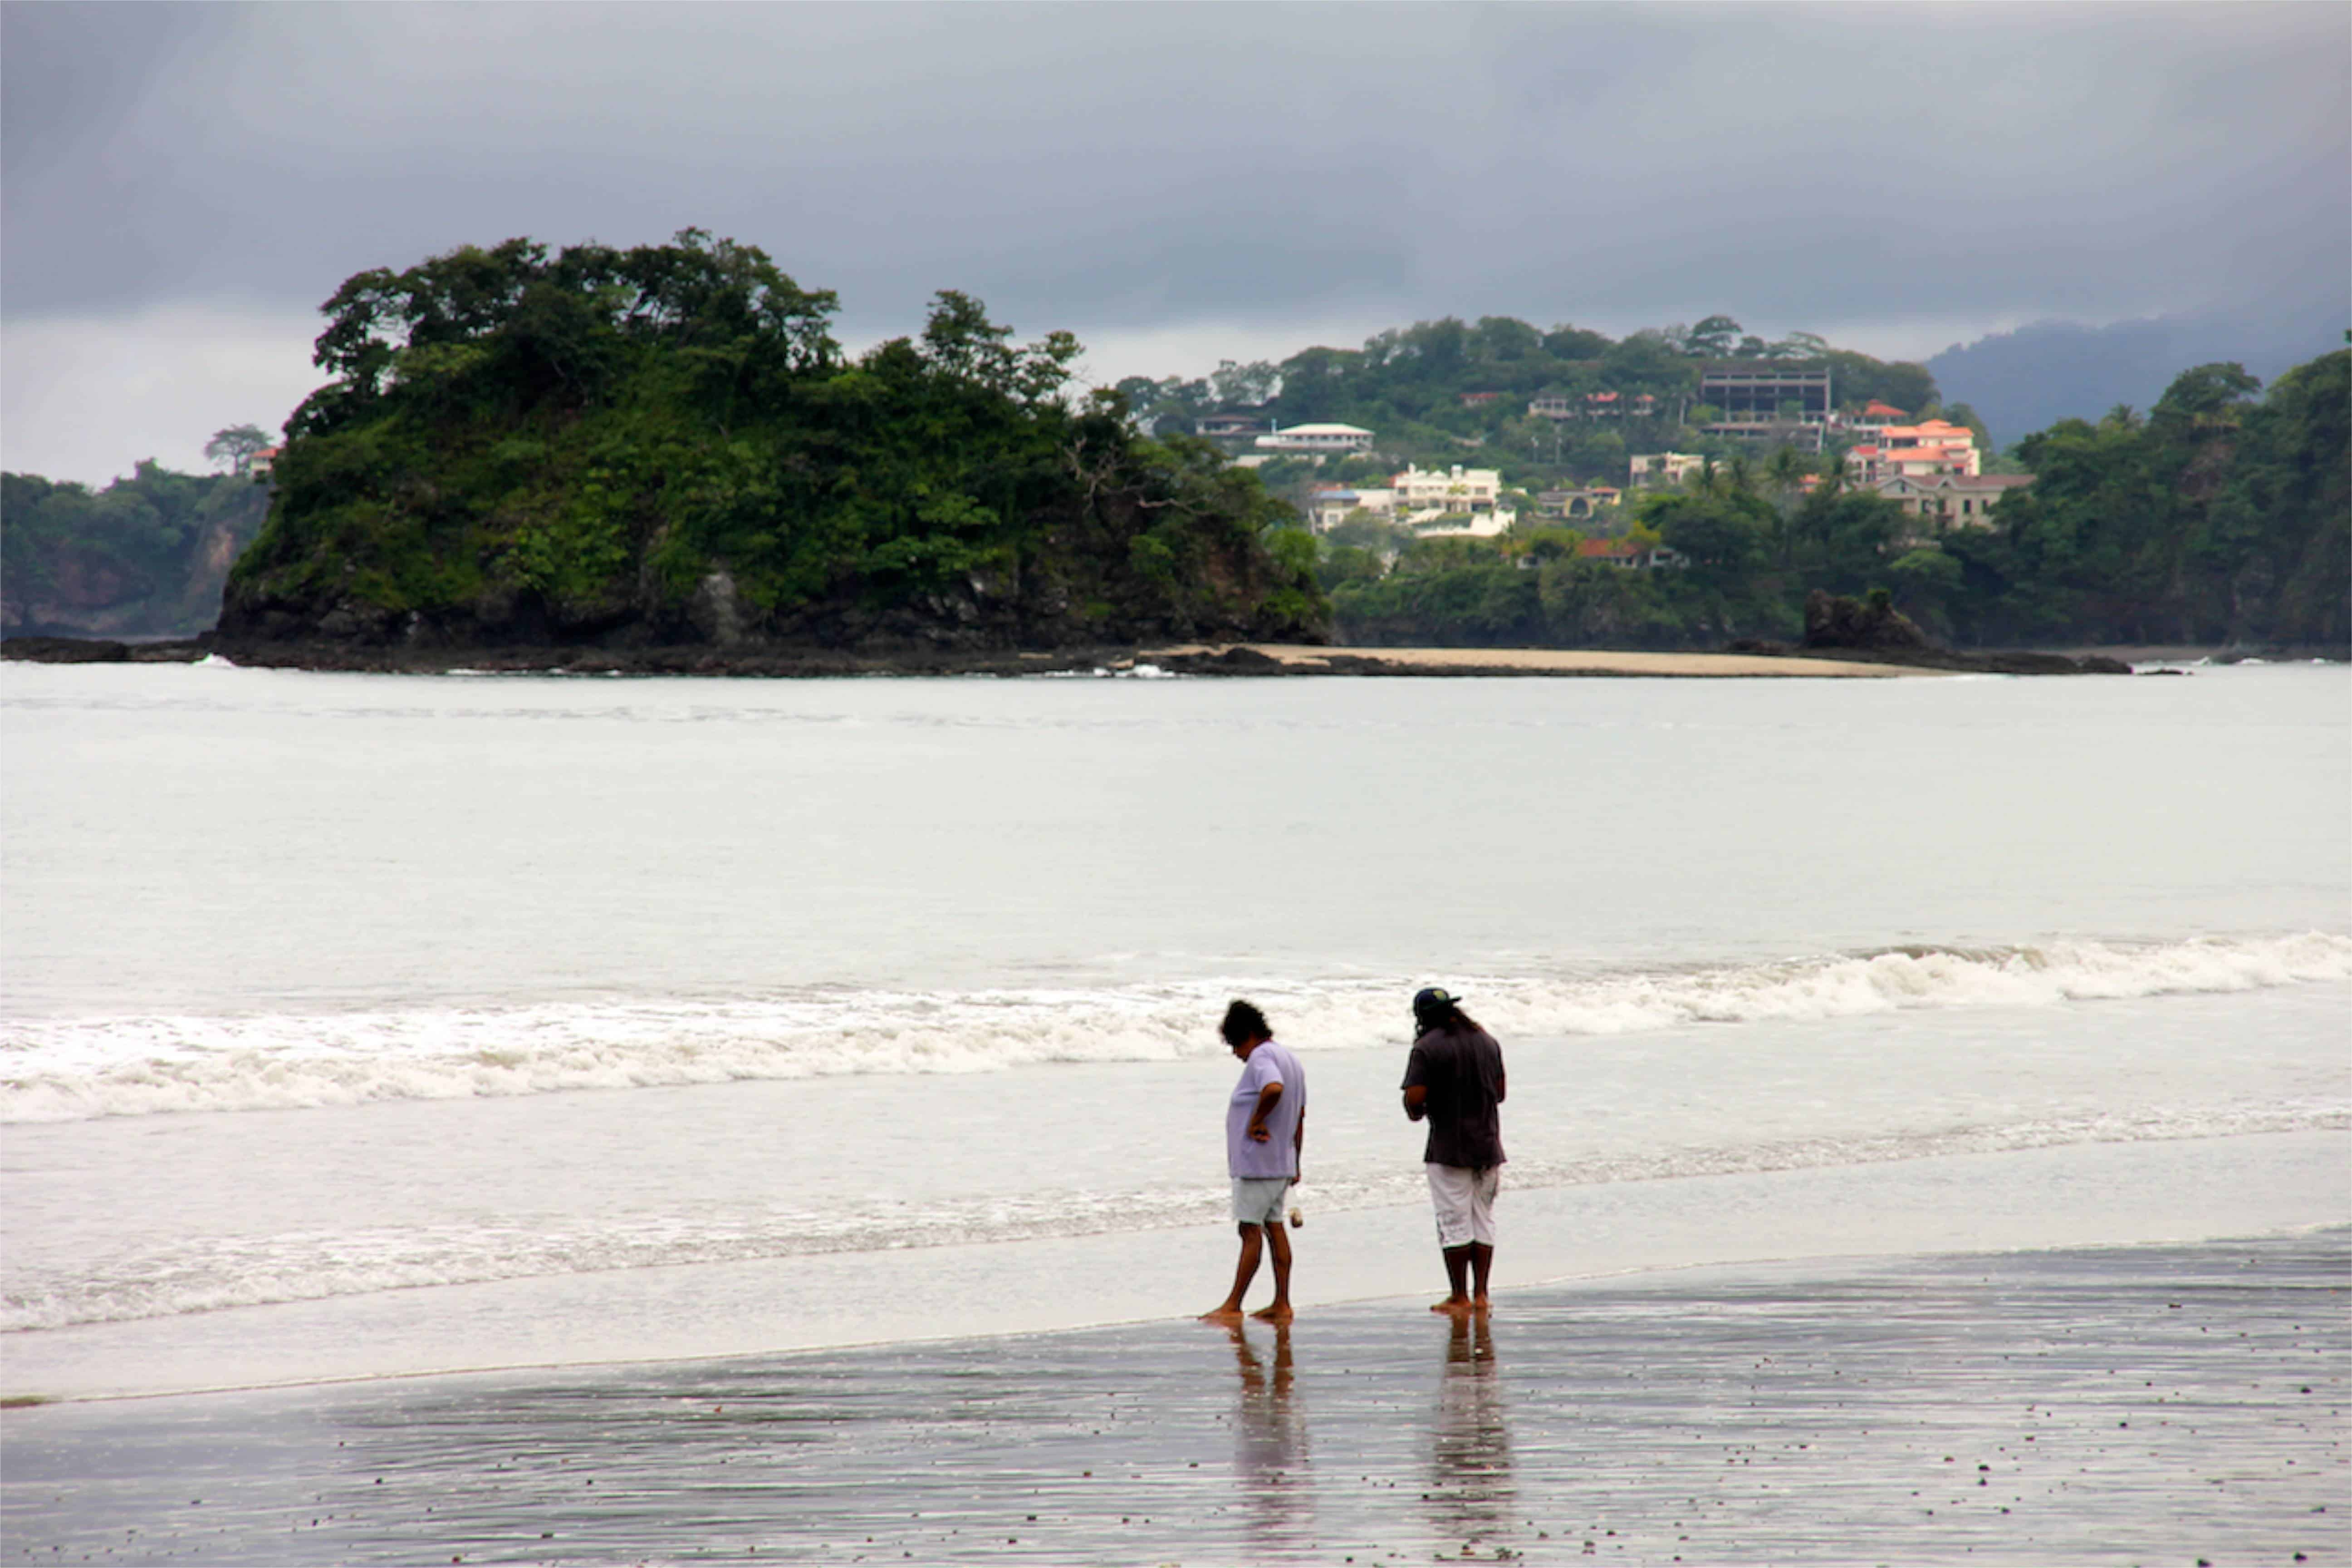 Beachgoers stroll the sands of Brasilito's bay.